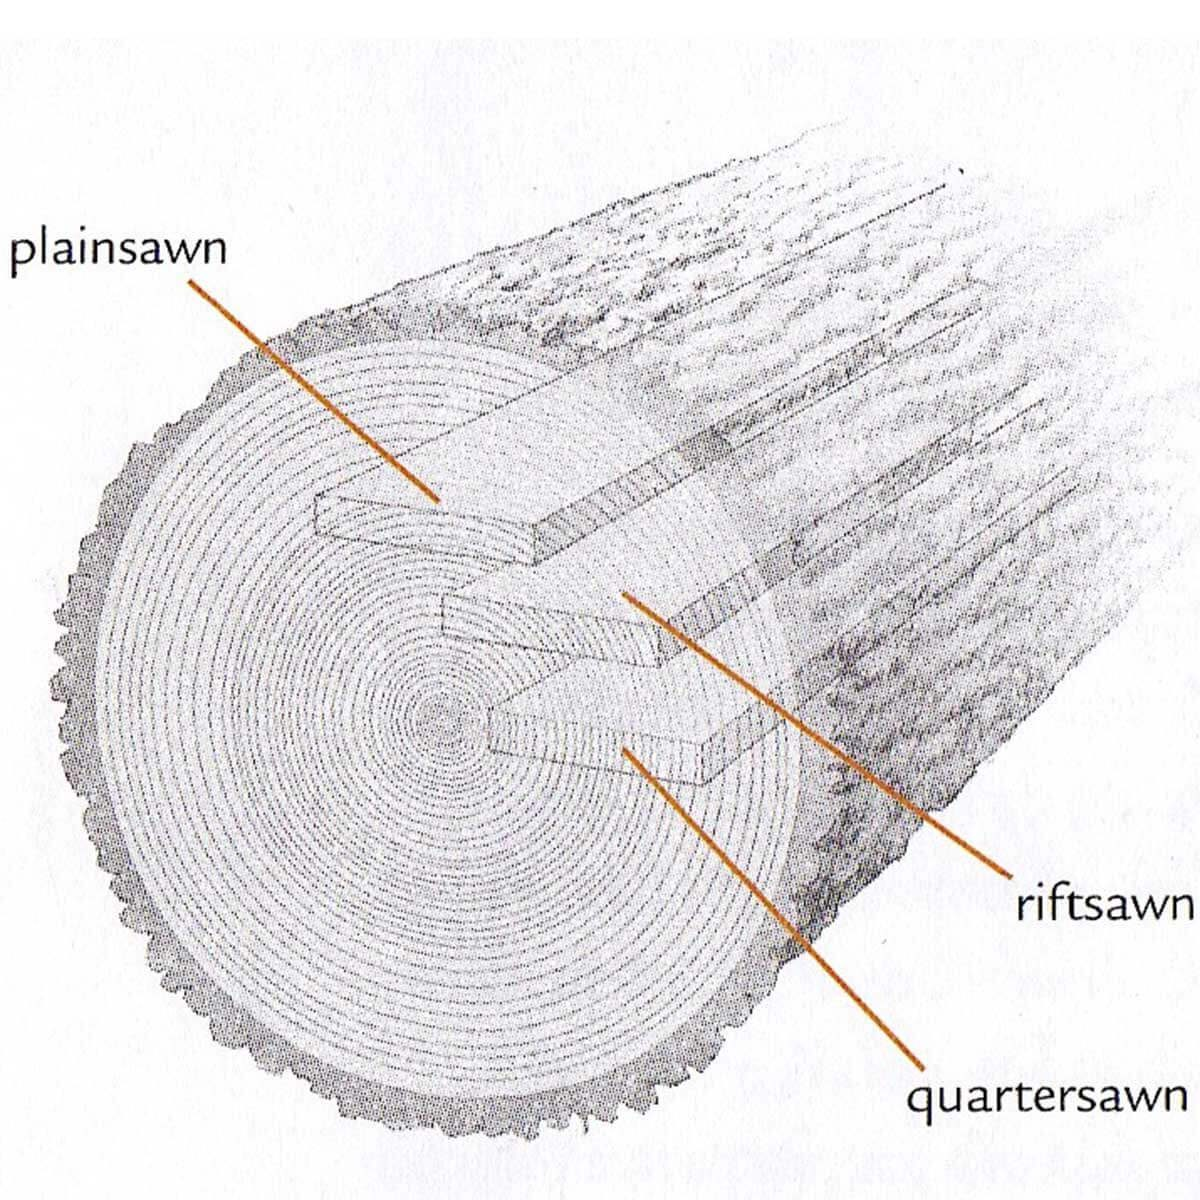 quarter-sawn wood illustration